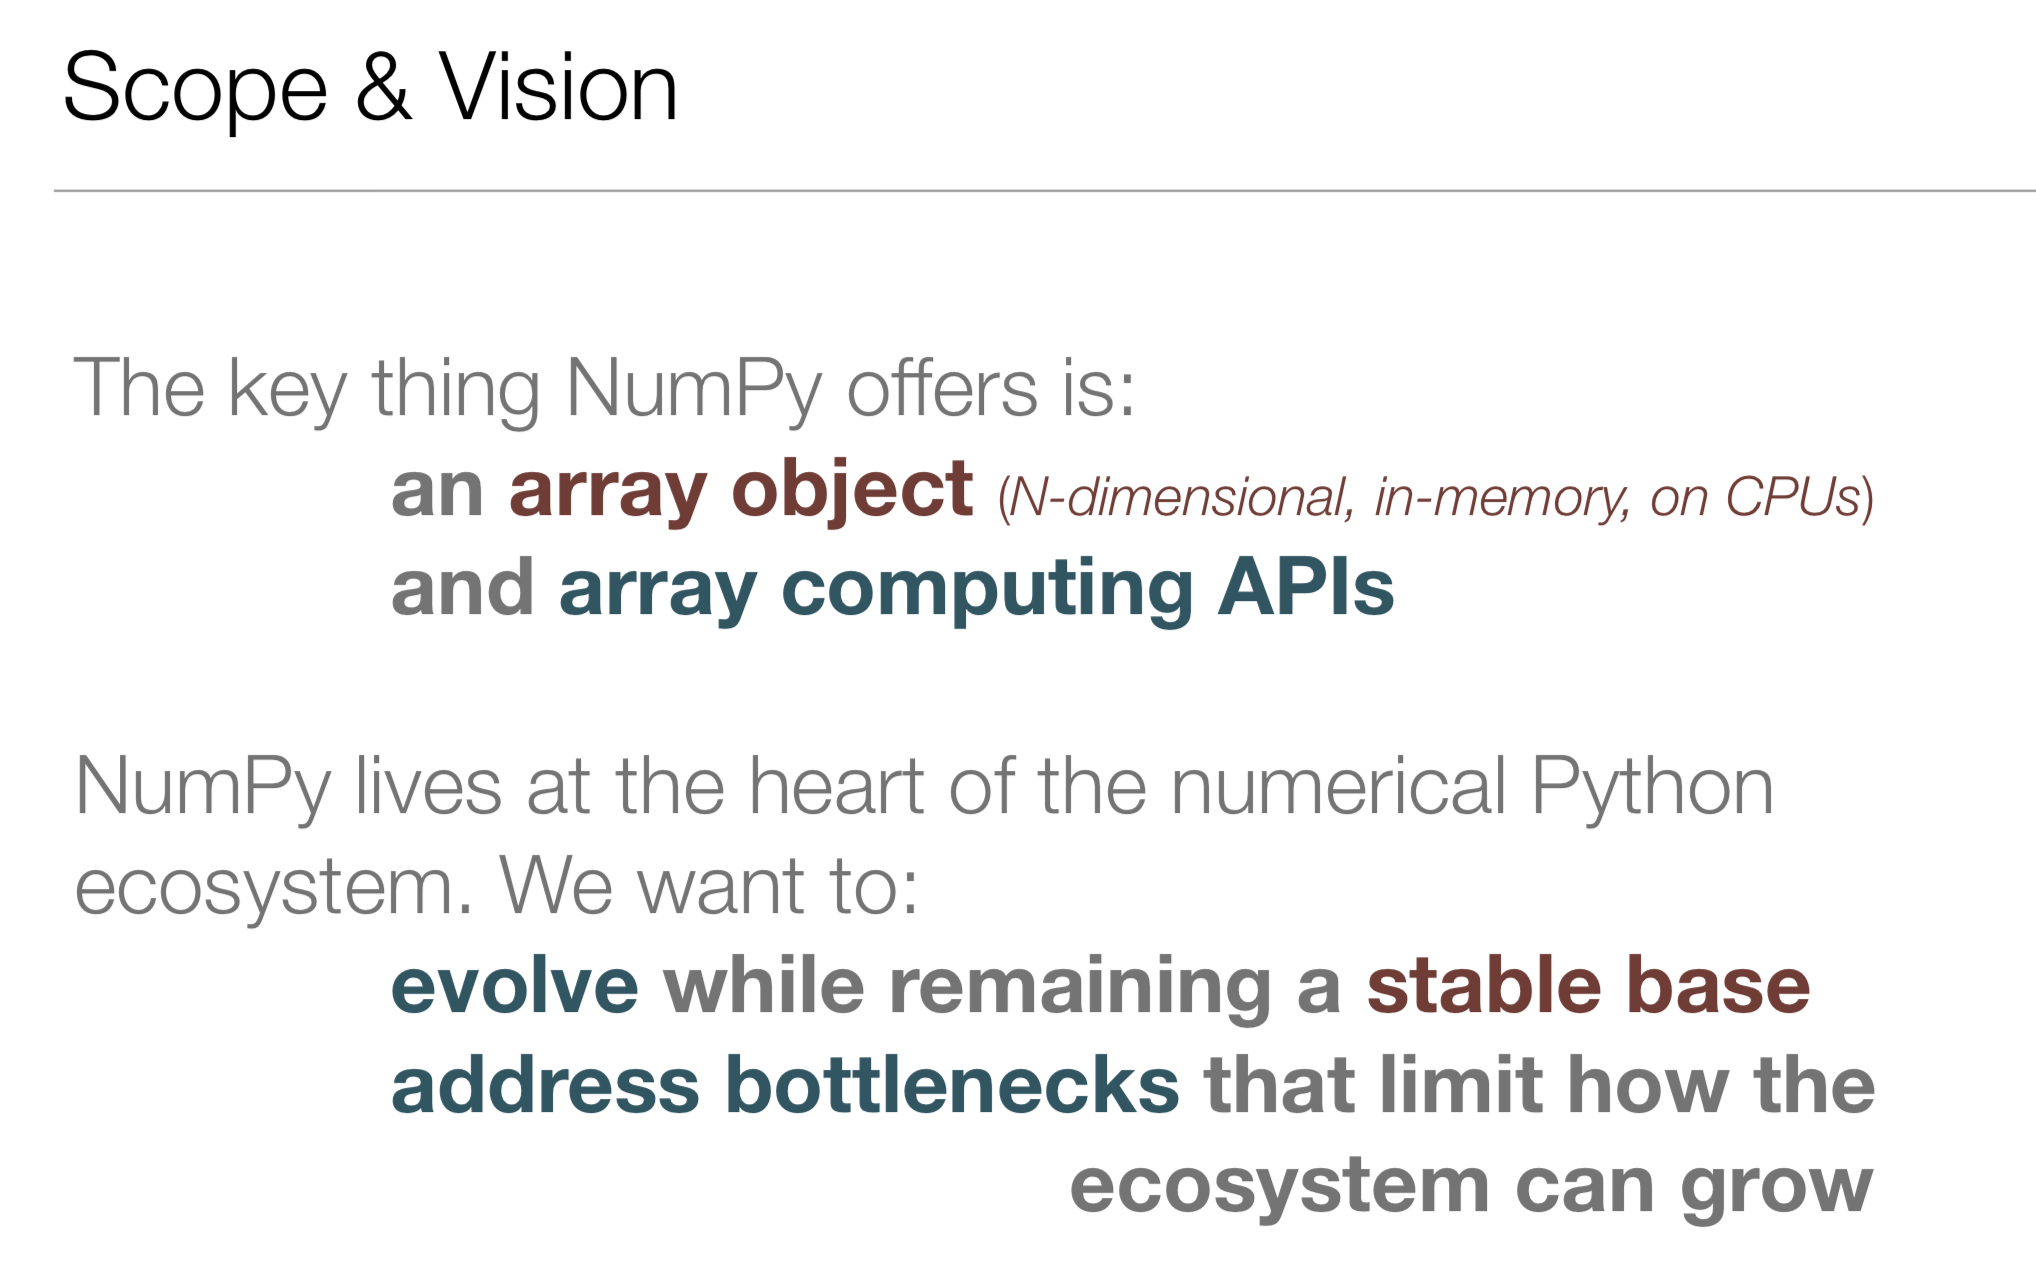 My view on the scope of and vision for NumPy